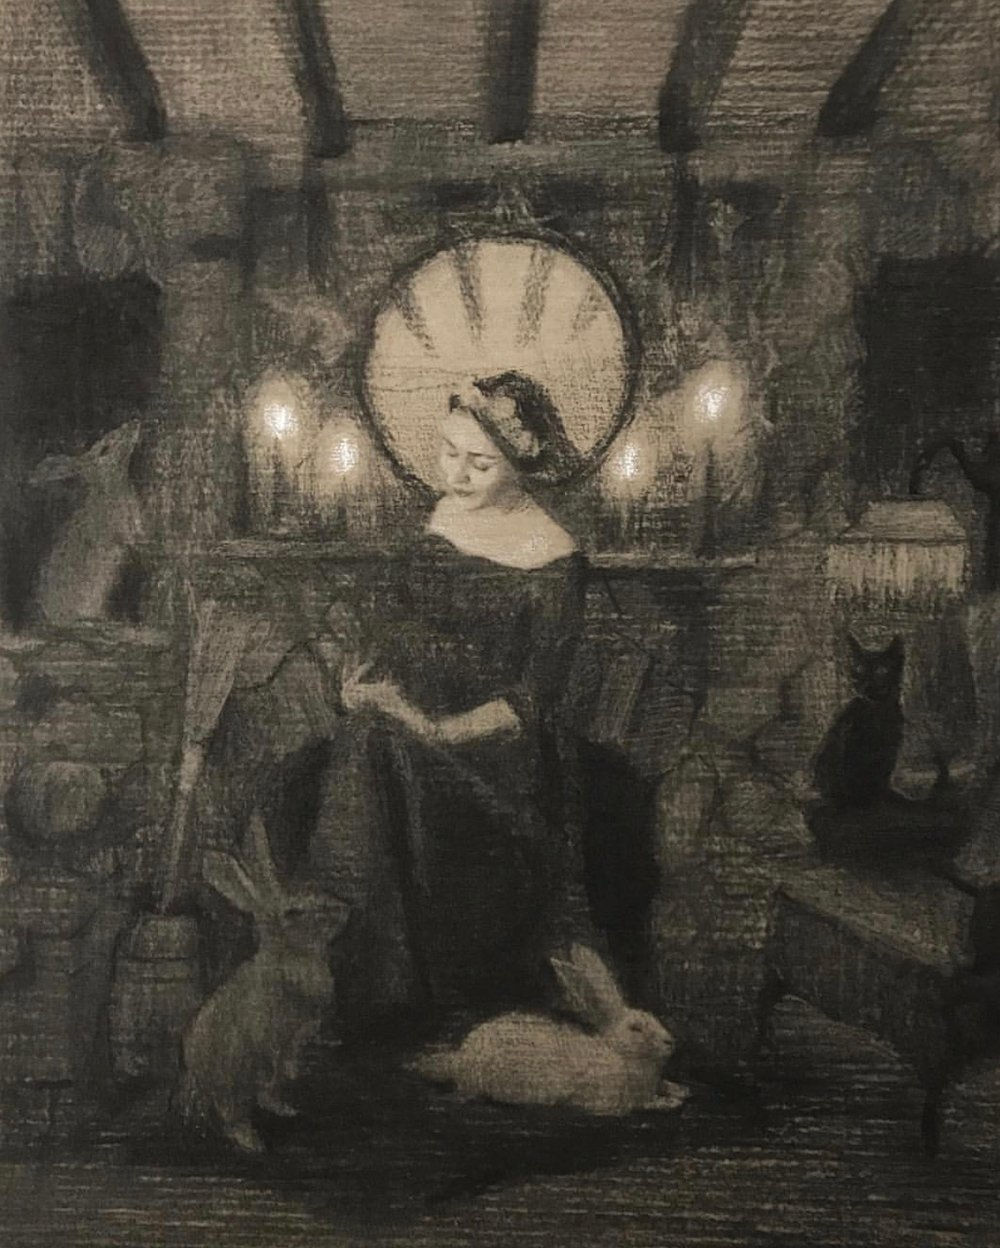 guinevere & her familiars, charcoal & white chalk on paper, 2017